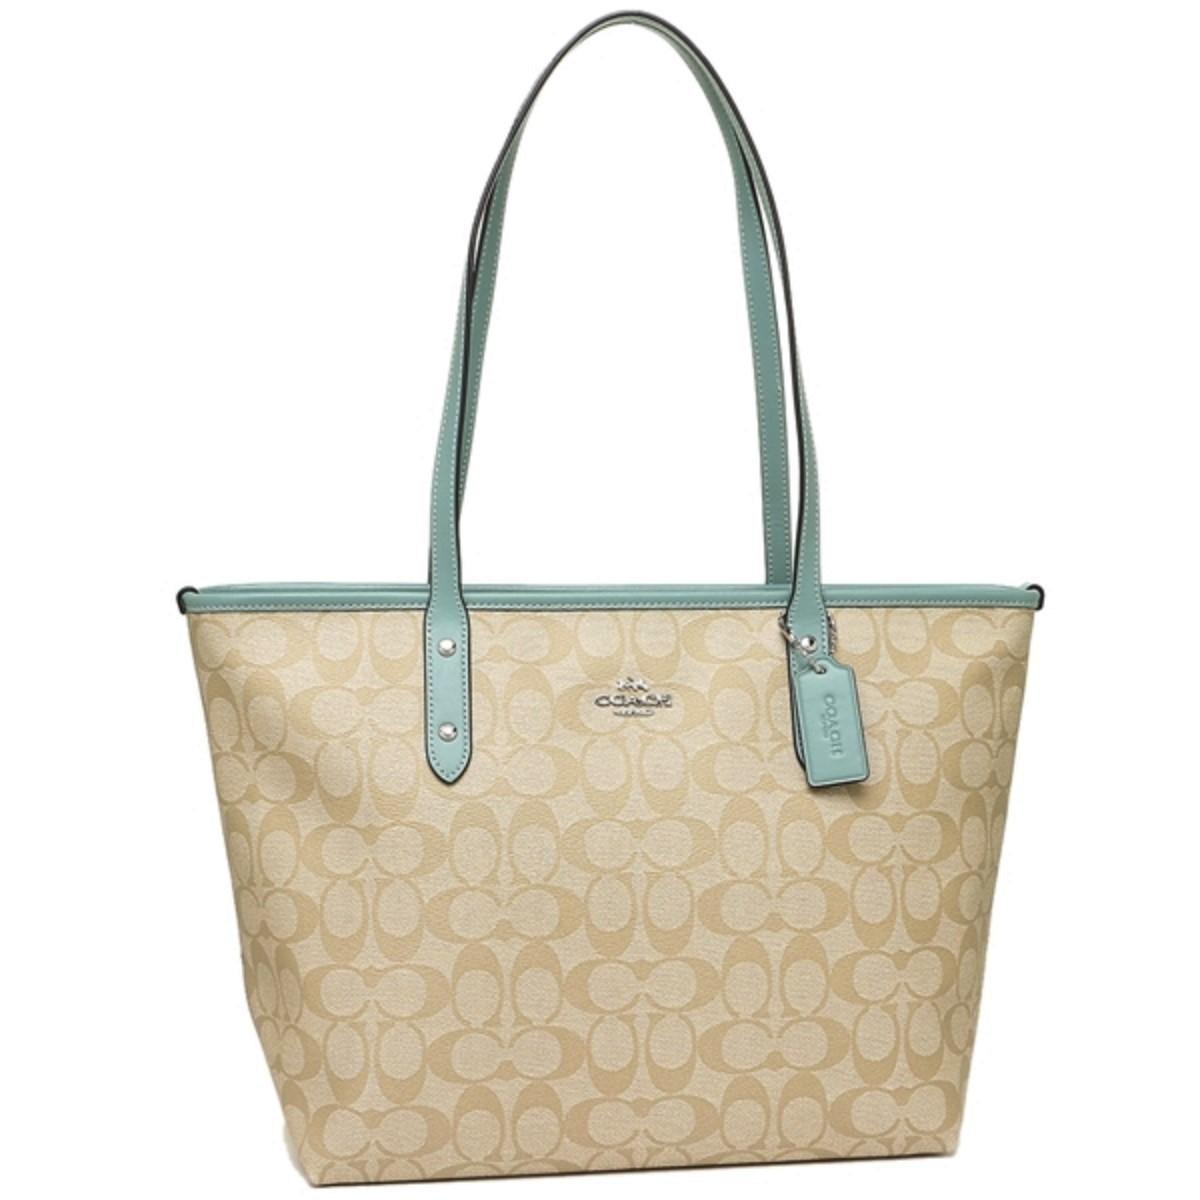 c8f6192061 ... where to buy coach monogram zip tote light green shoulder bag 1947a  1cf11